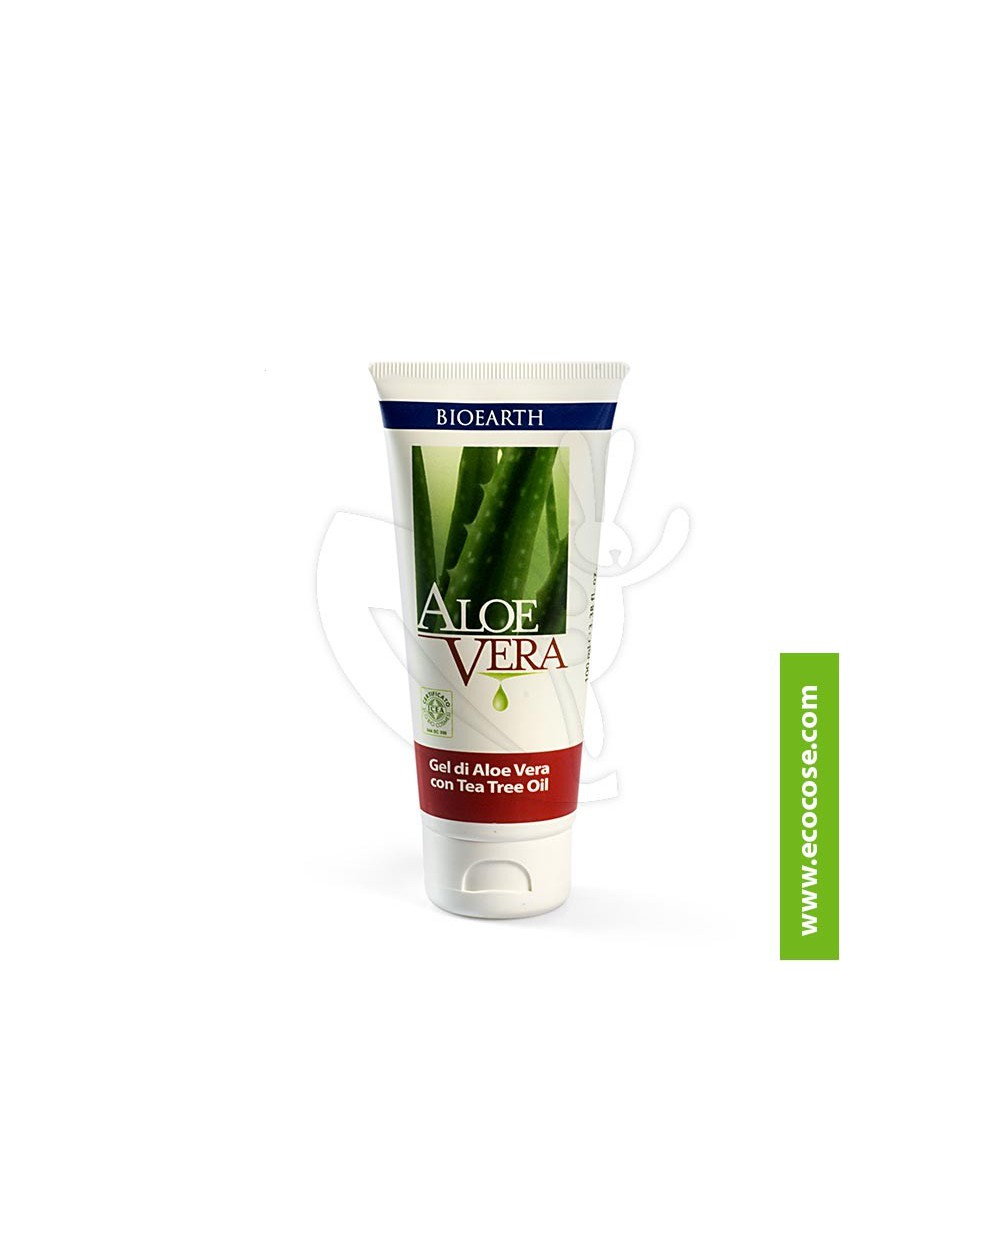 AloeVera Bioearth - Aloe Vera gel con Tea Tree biologico